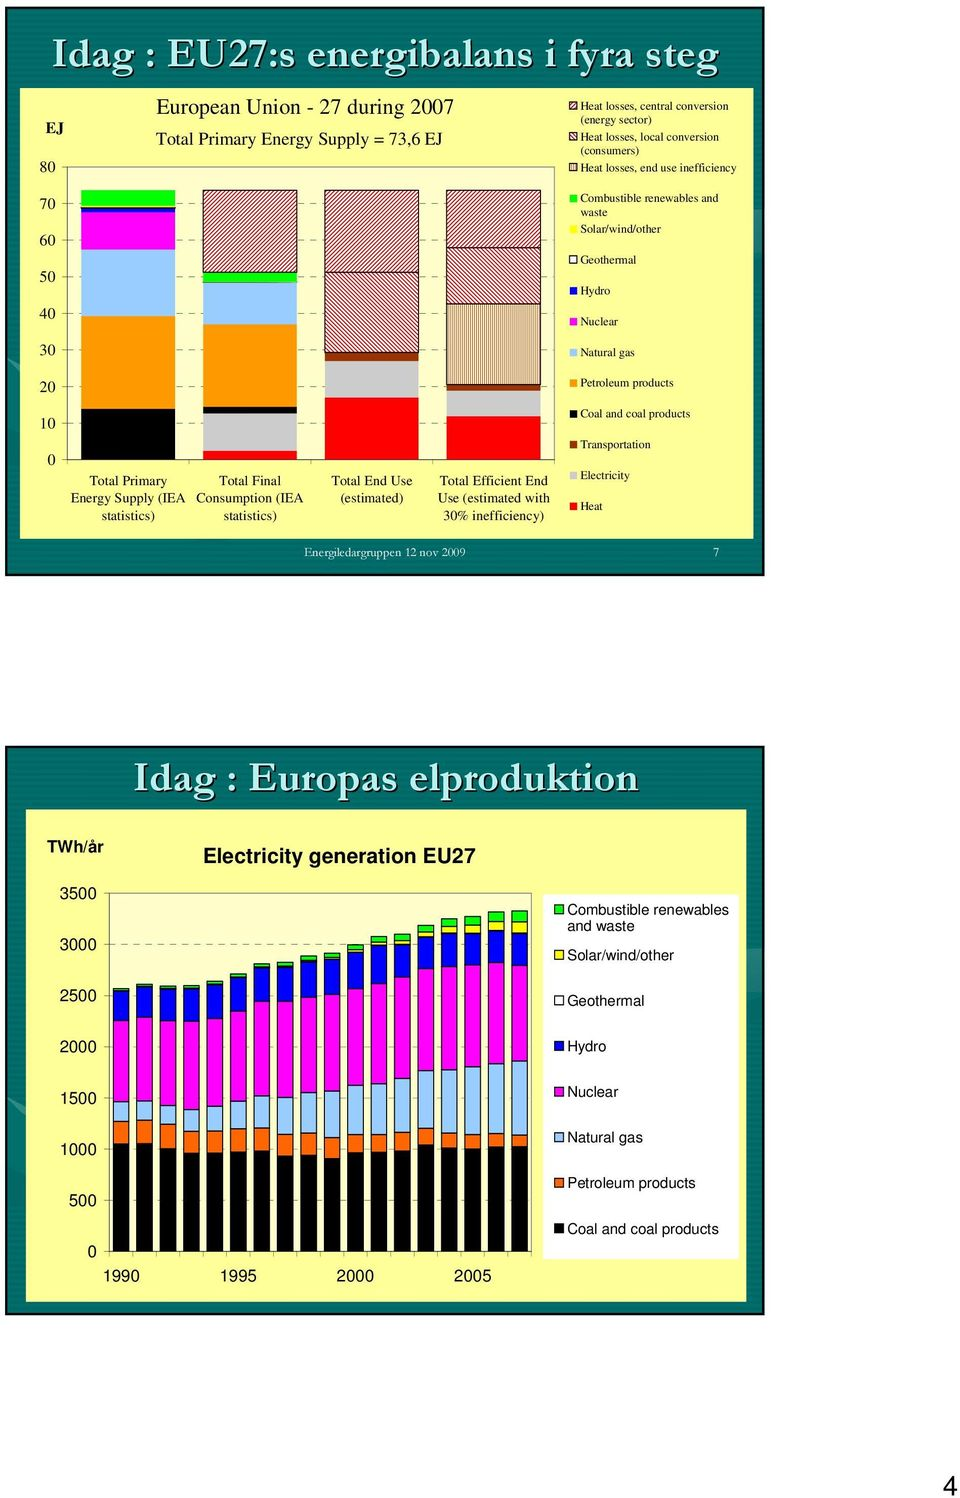 Primary Energy Supply (IEA statistics) Total Final Consumption (IEA statistics) Total End Use (estimated) Total Efficient End Use (estimated with 3% inefficiency) Transportation Electricity Heat